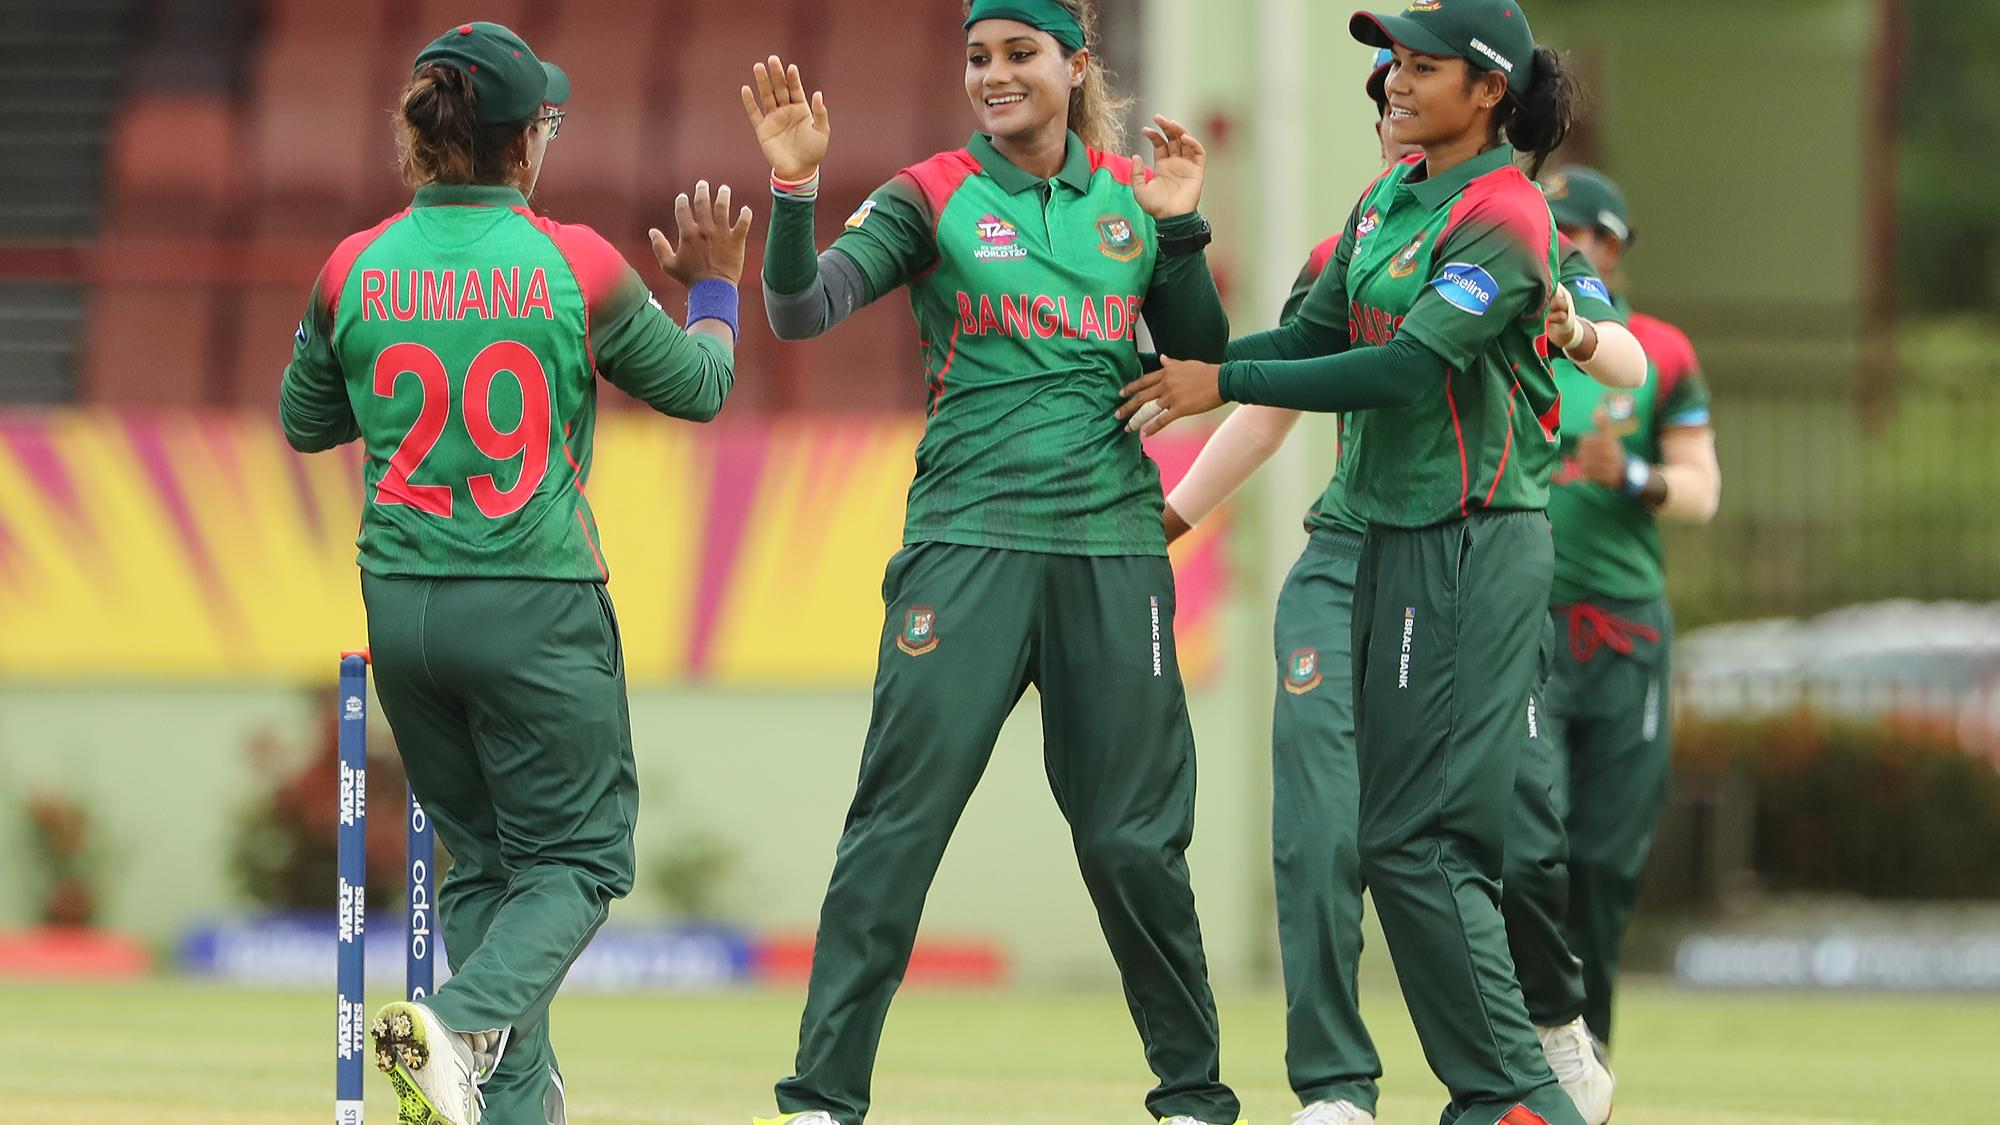 Jahanara Alam (C) of Bangladesh celebrates with teammates Rumana Ahmed (L) and Sanjida Islam (R) during the ICC Women's World T20 warm up match between Bangladesh and Ireland on November 4, 2018 at the Guyana National Stadium in Providence, Guyana.